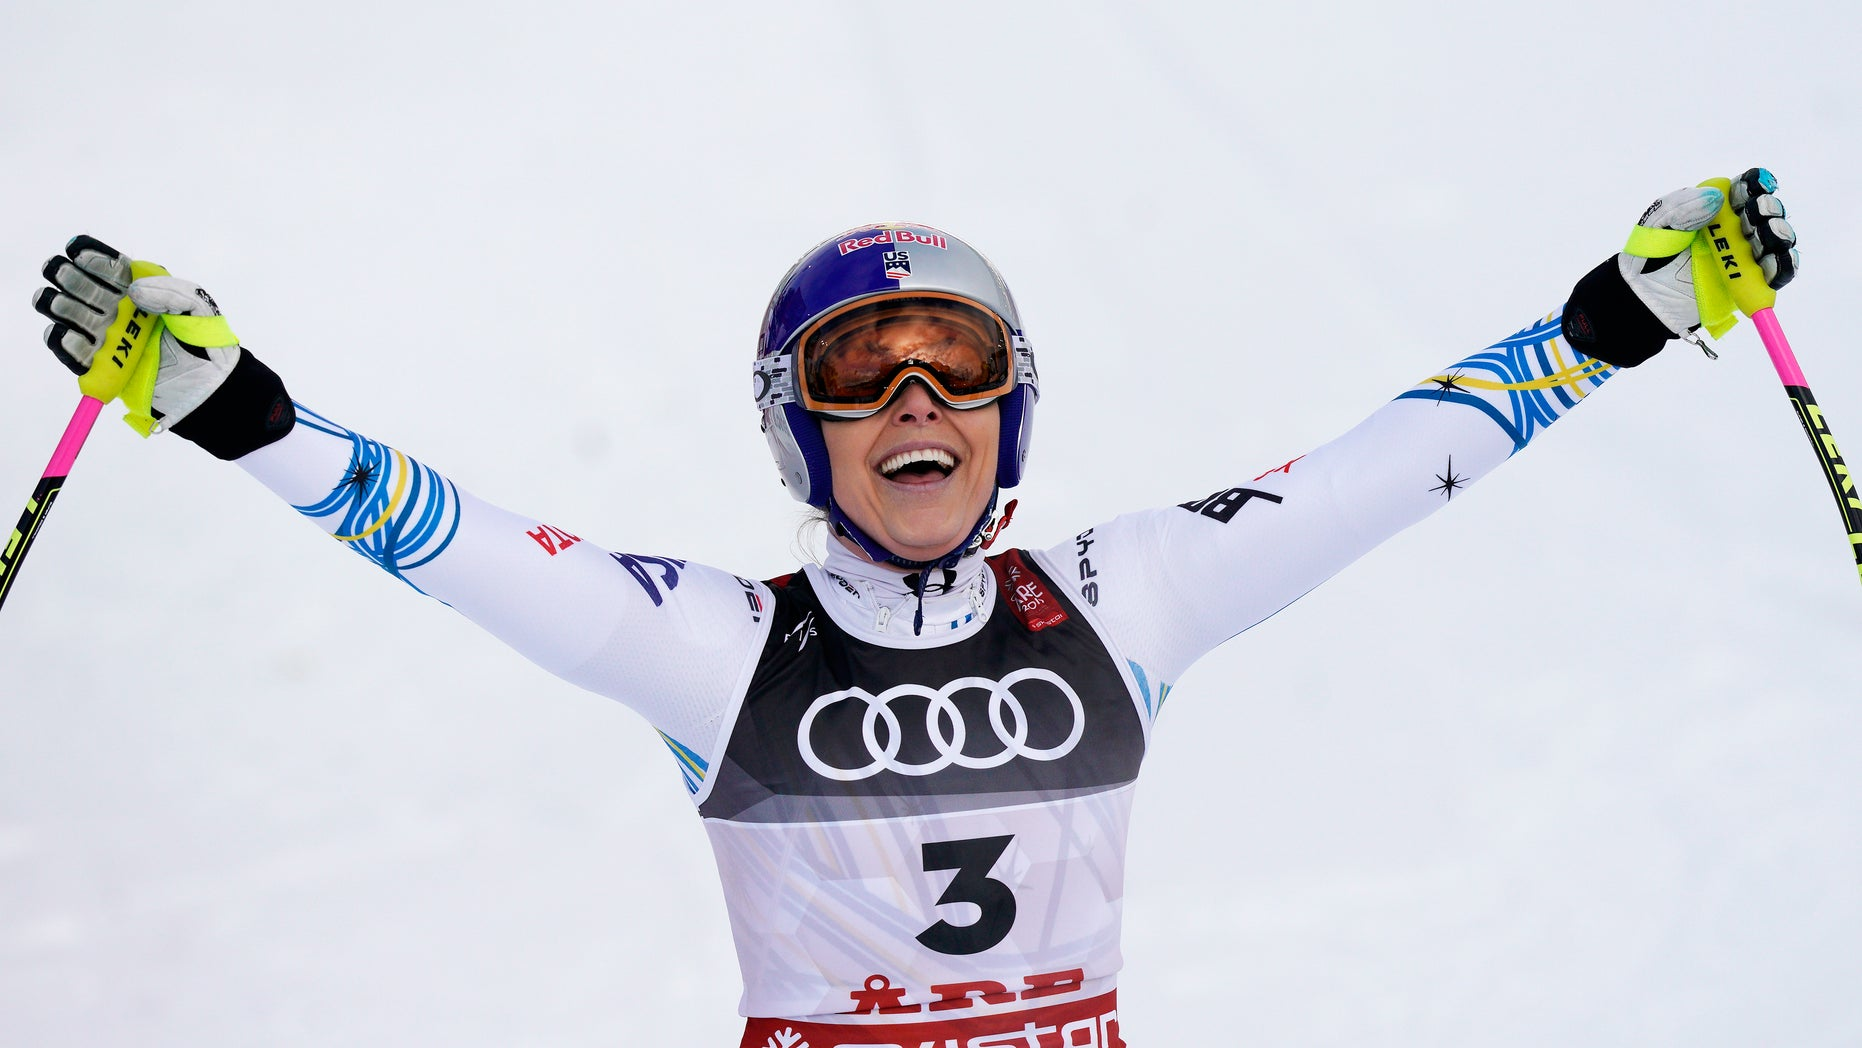 United States' Lindsey Vonn smiles in the finish area after the women's downhill race, at the alpine ski World Championships in Are, Sweden, Sunday, Feb. 10, 2019.